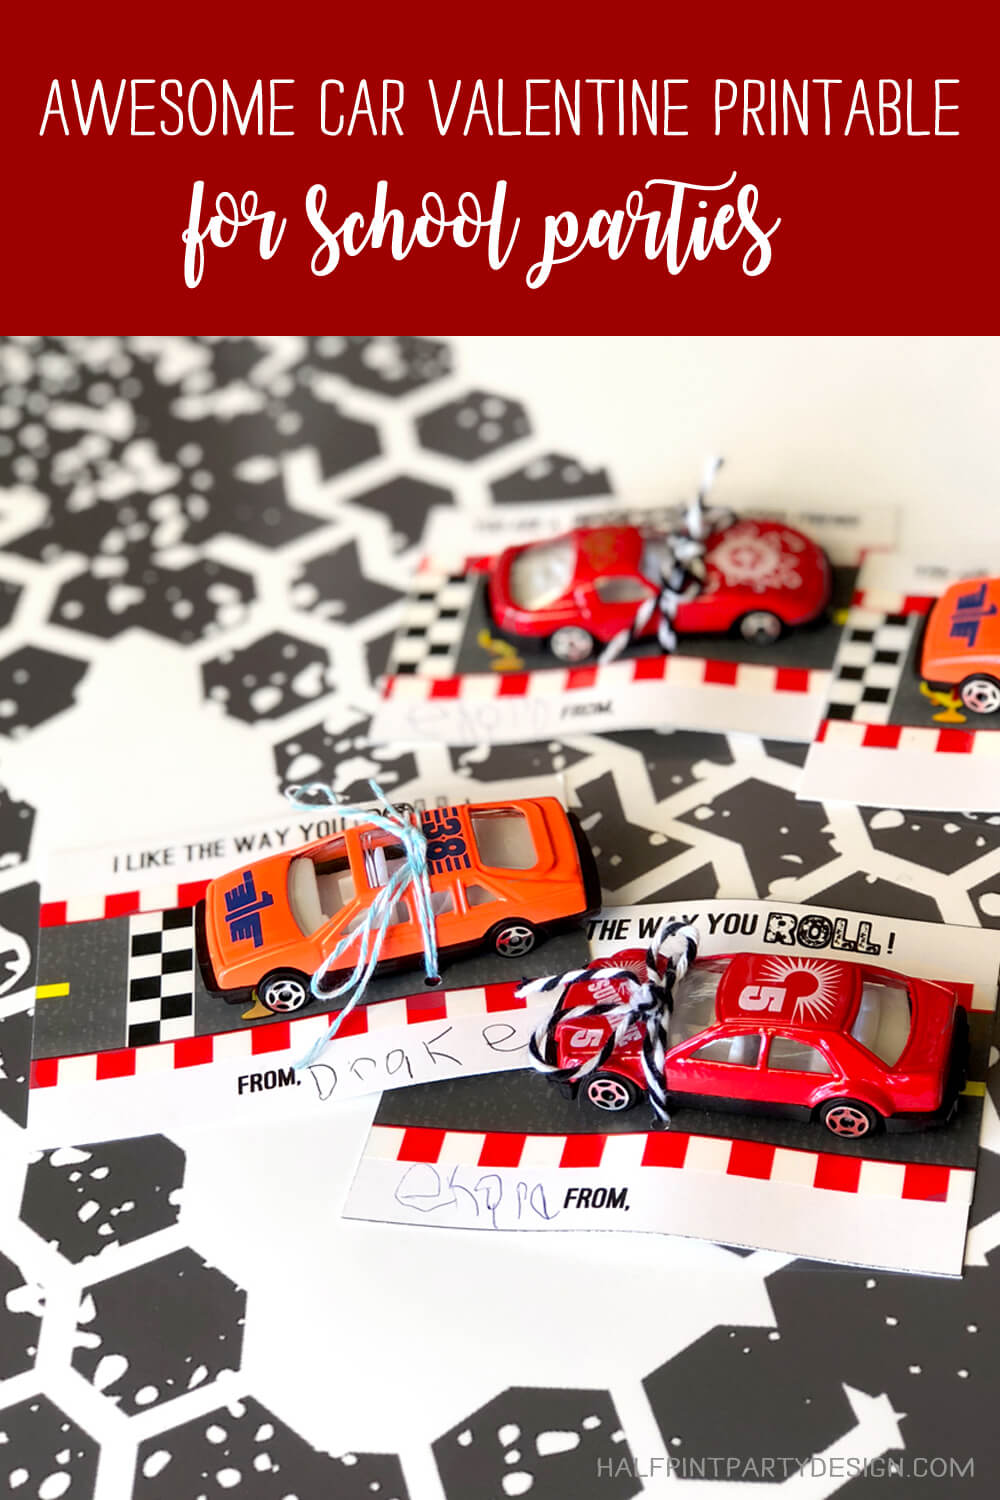 Awesome car valentines for school parties tied with a string